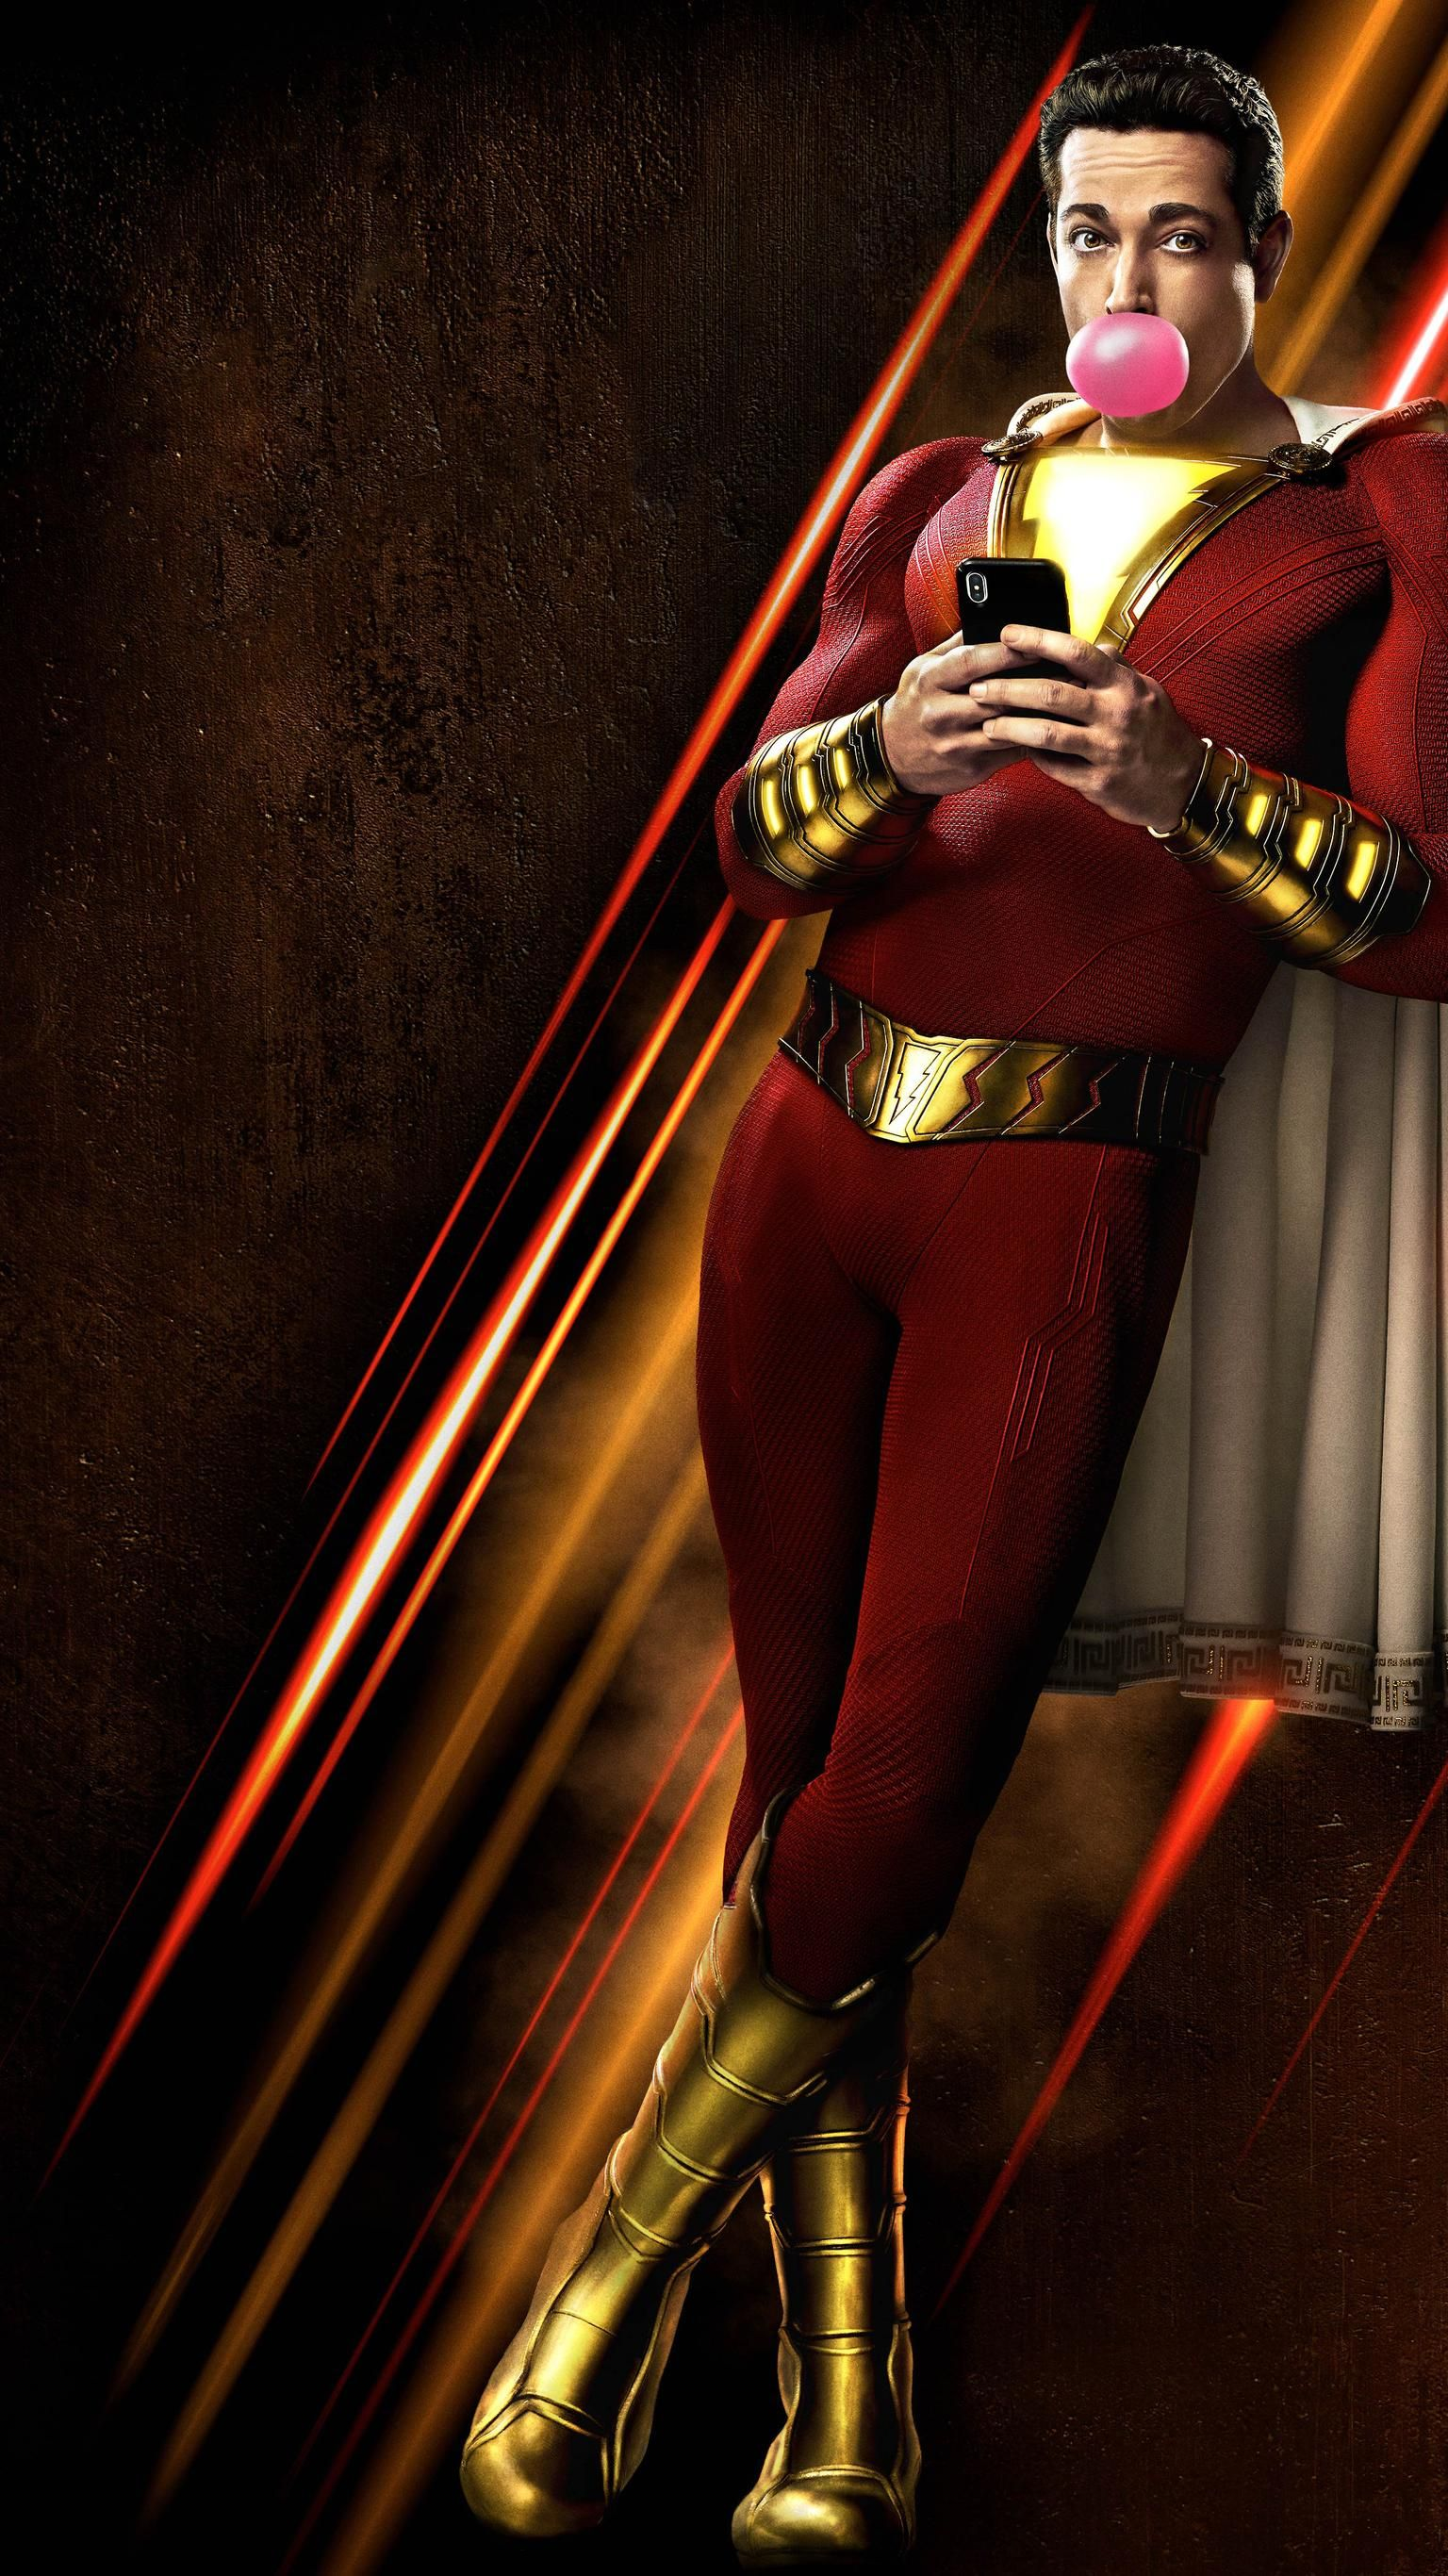 Shazam 2019 Phone Wallpaper Phone Wallpapers Shazam movie 1536x2732